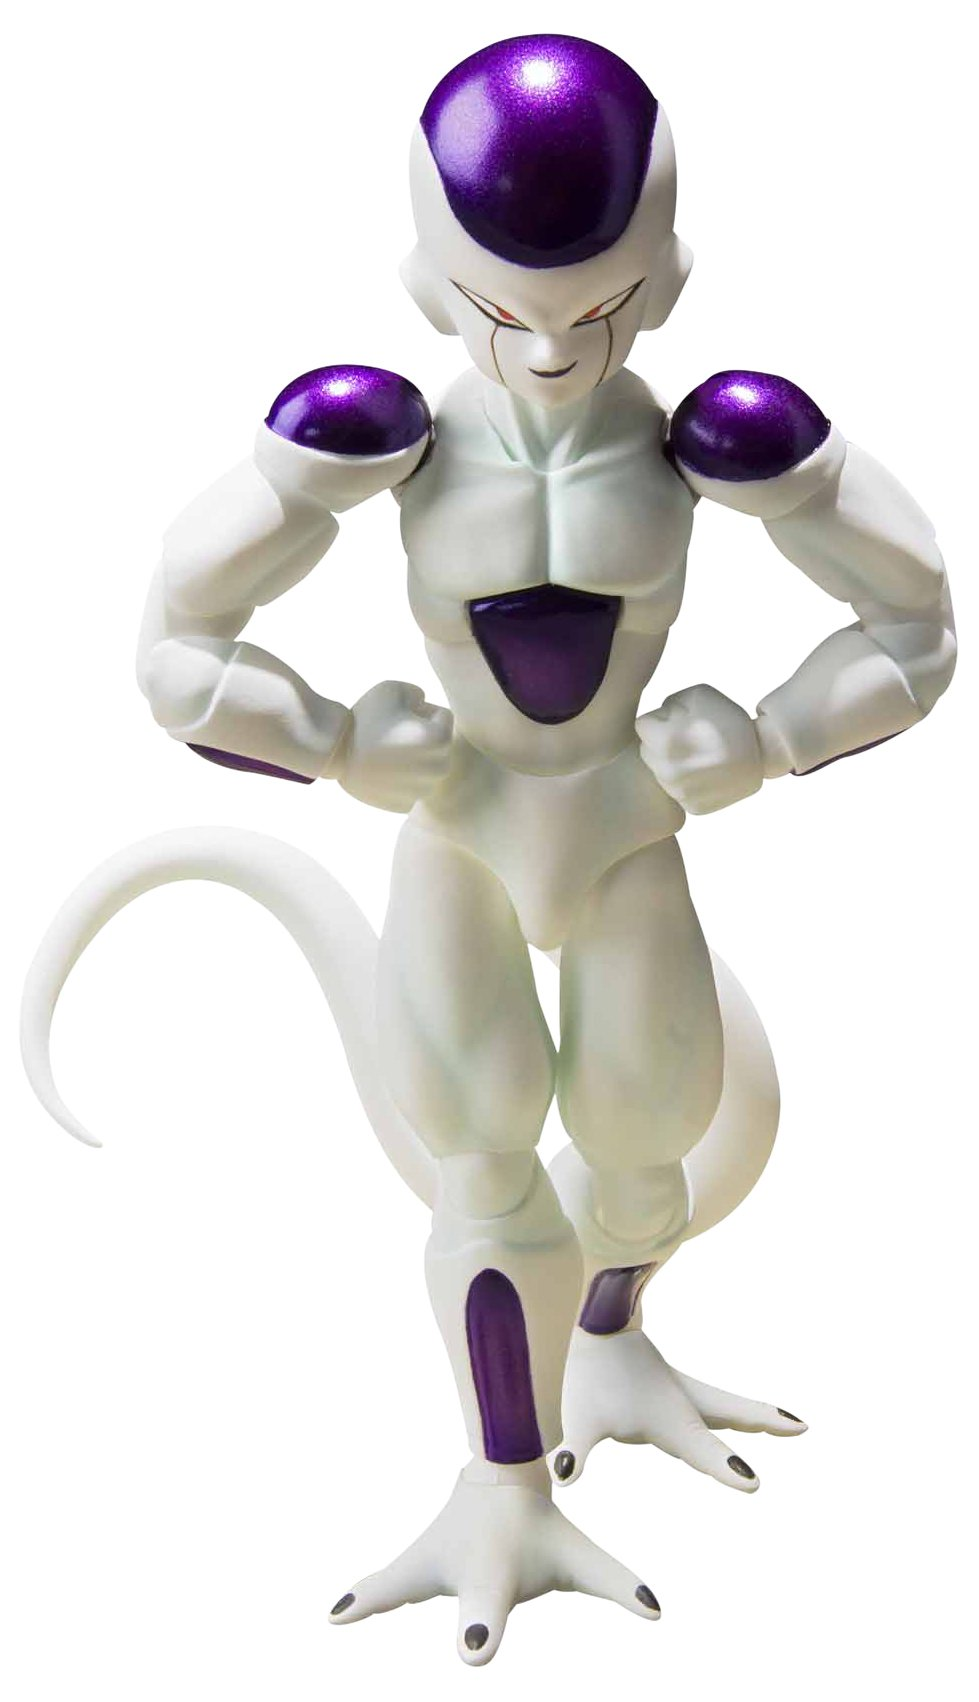 Tamashii Nations Bandai S.H. Figuarts Frieza -Resurrection- Dragon Ball Super Action Figure